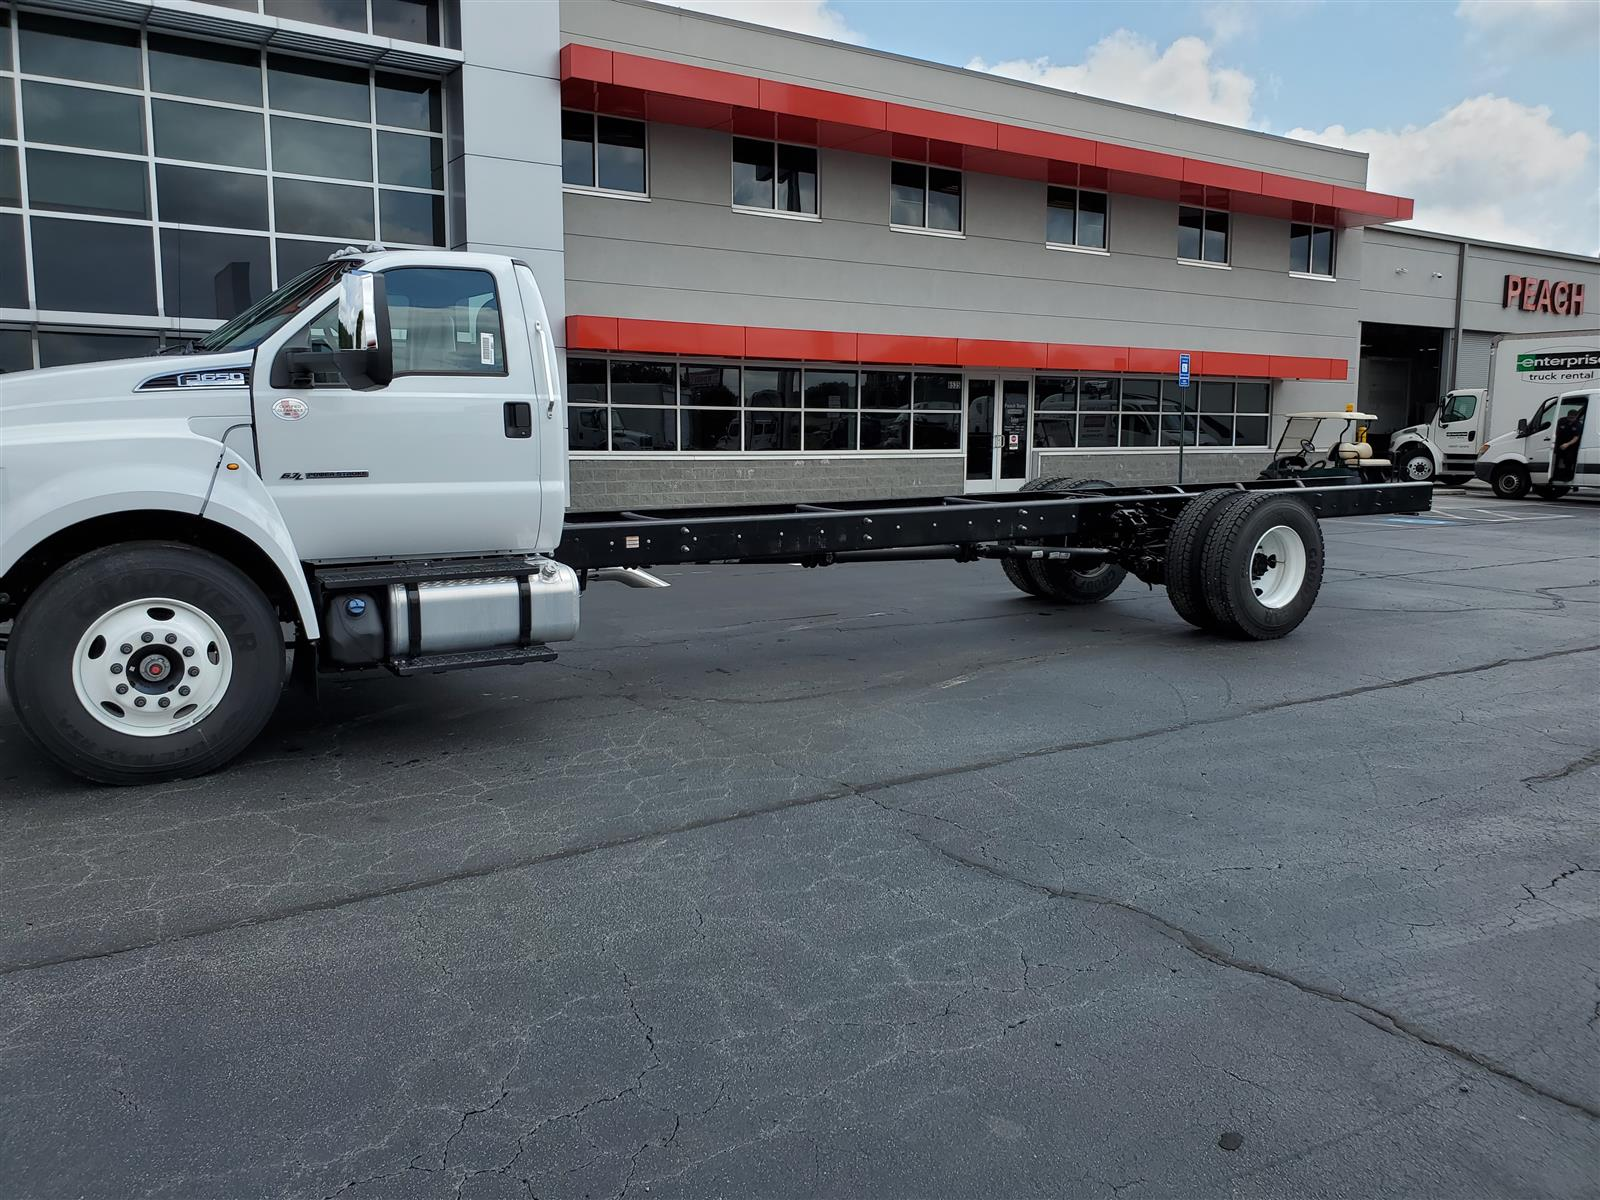 2021 Ford F-650 Regular Cab DRW 4x2, Cab Chassis #MDF02561 - photo 1